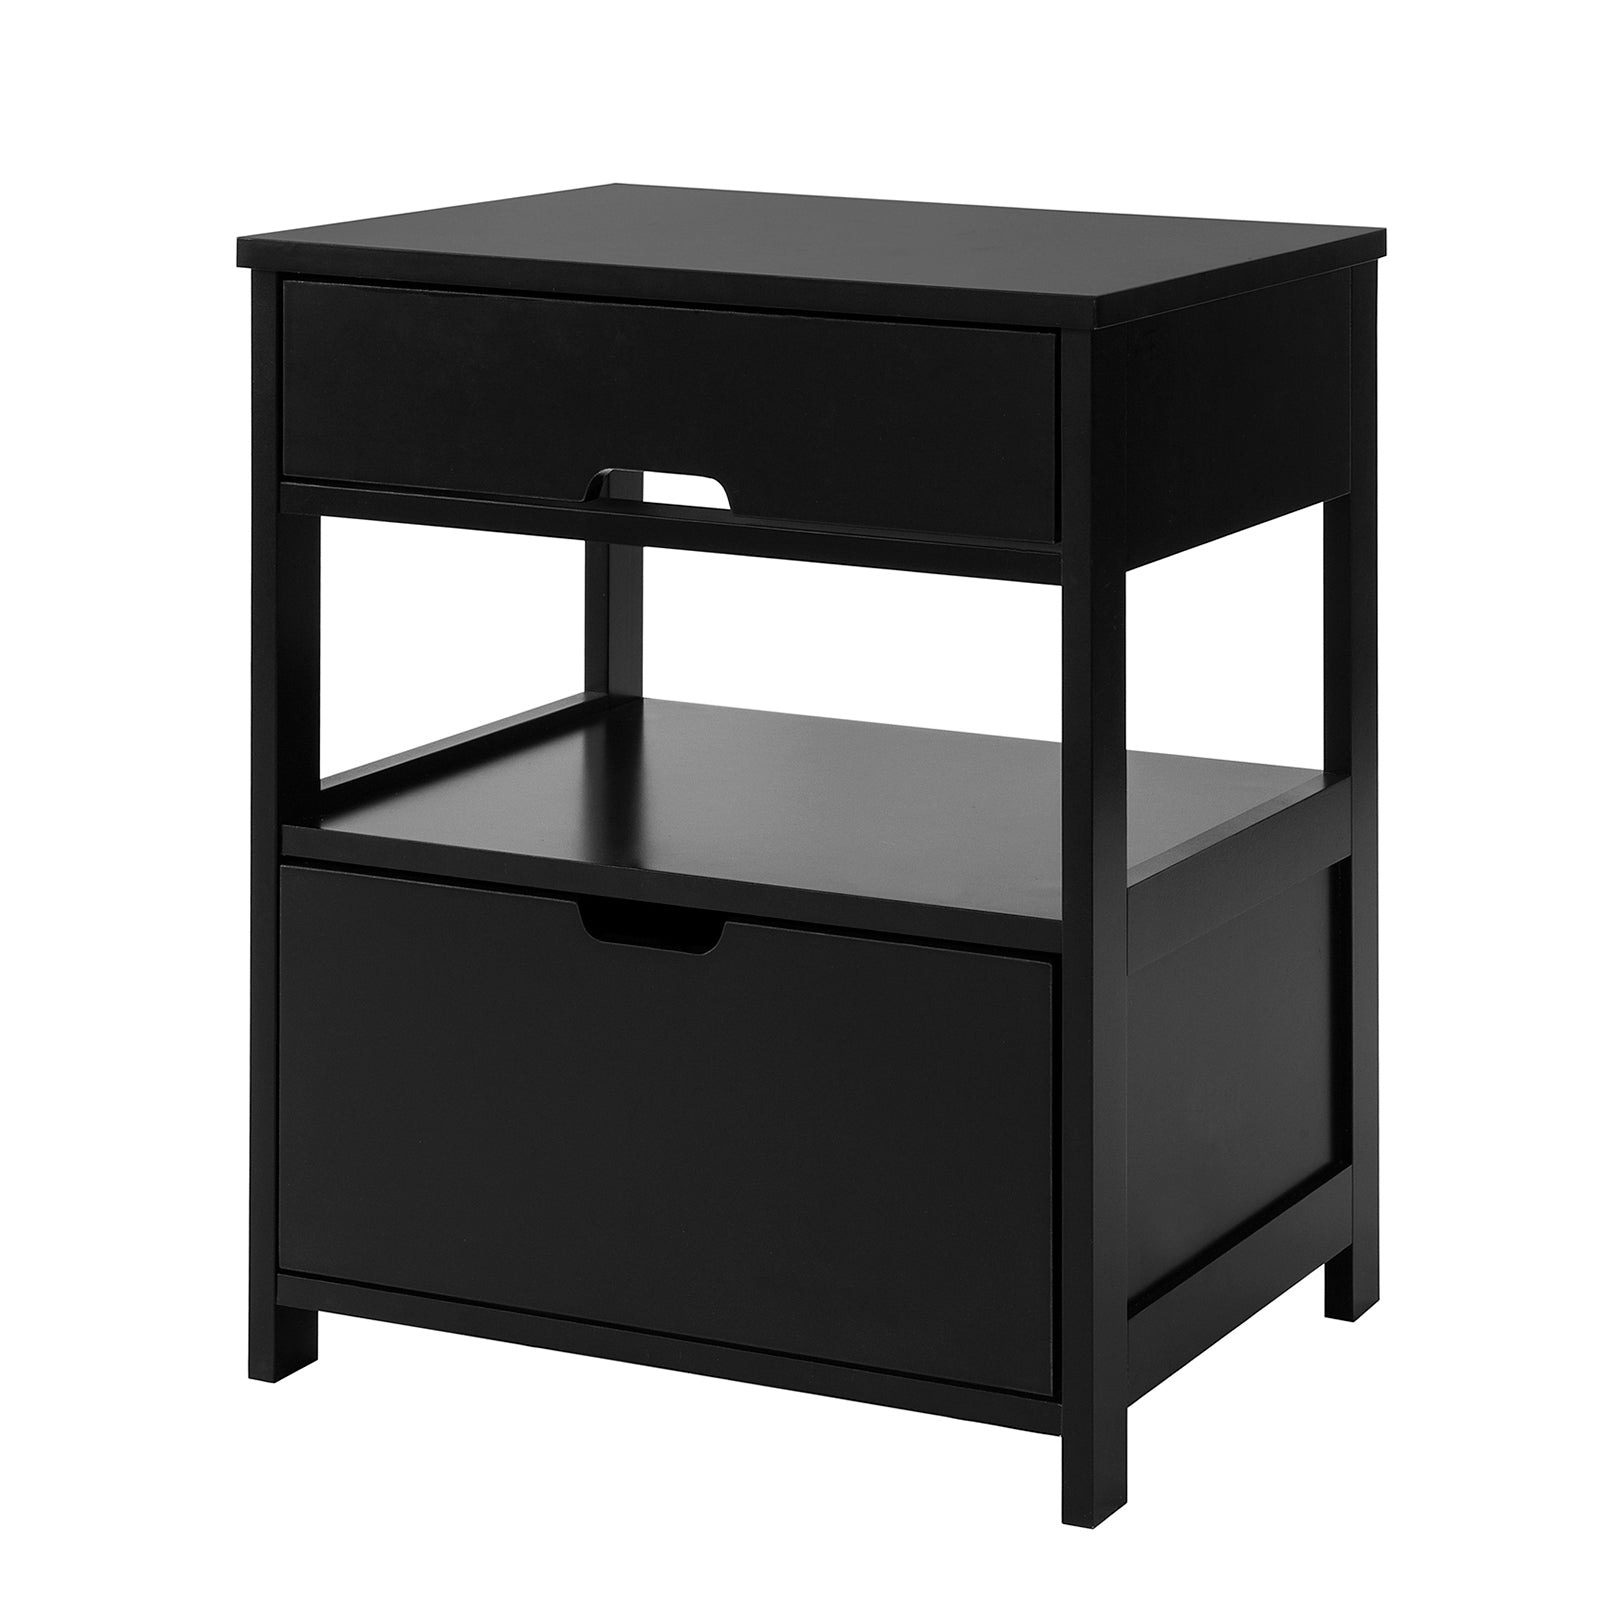 SoBuy Bedroom Bedside Table with 2 drawers W45 * D38 * H50 cm, black FRG258-SCH